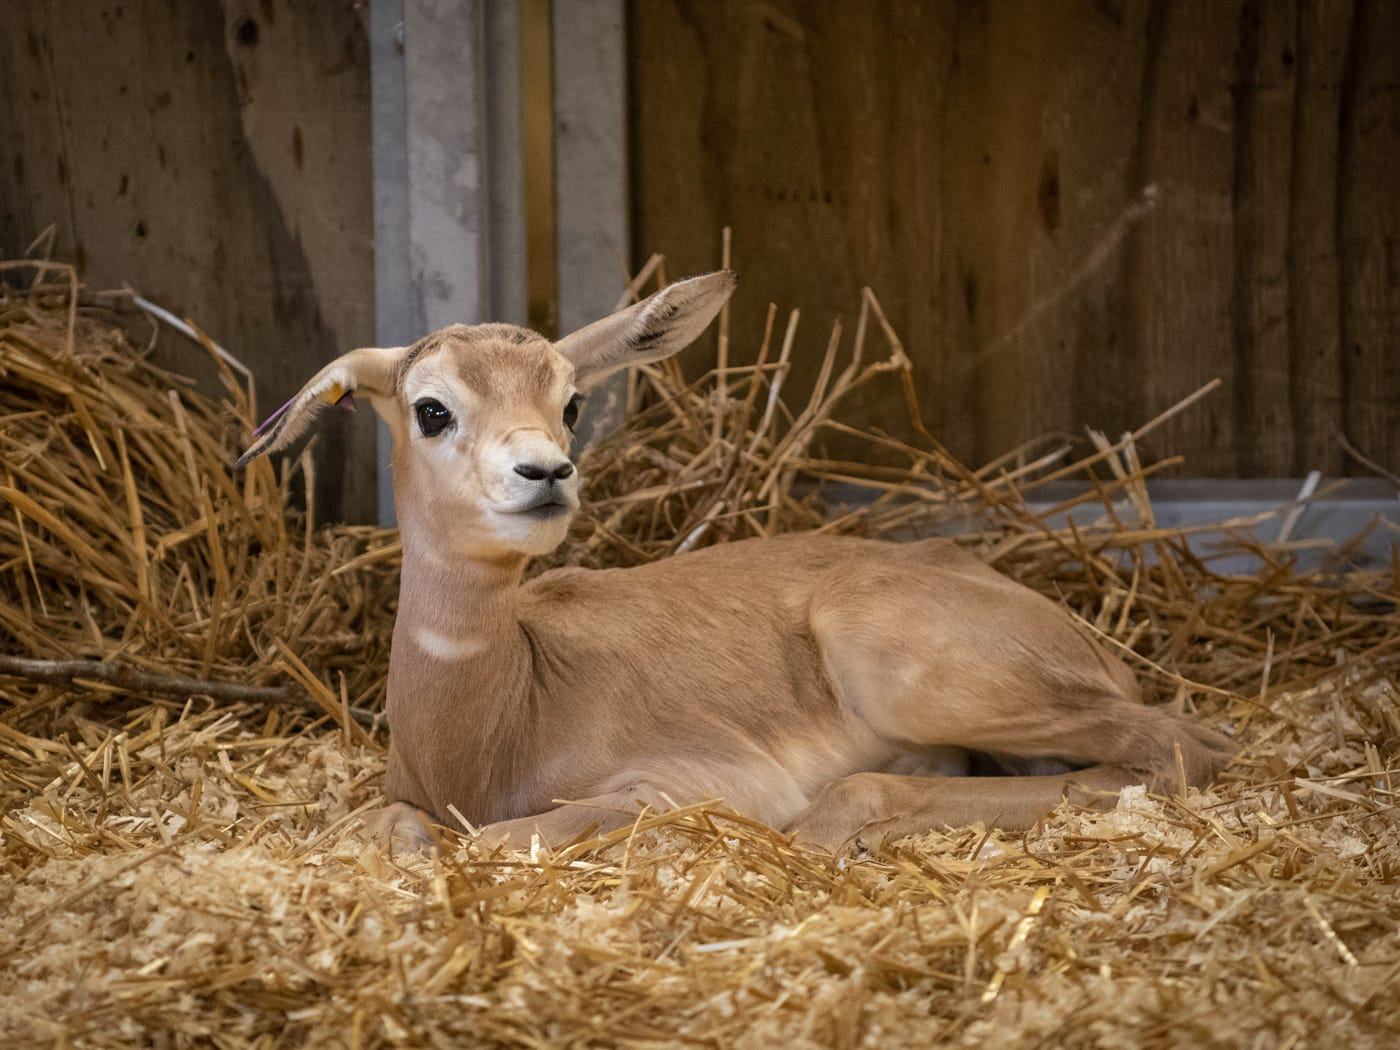 Kix, a male dama gazelle calf, was born Jan. 30 at the Columbus Zoo and Aquarium.